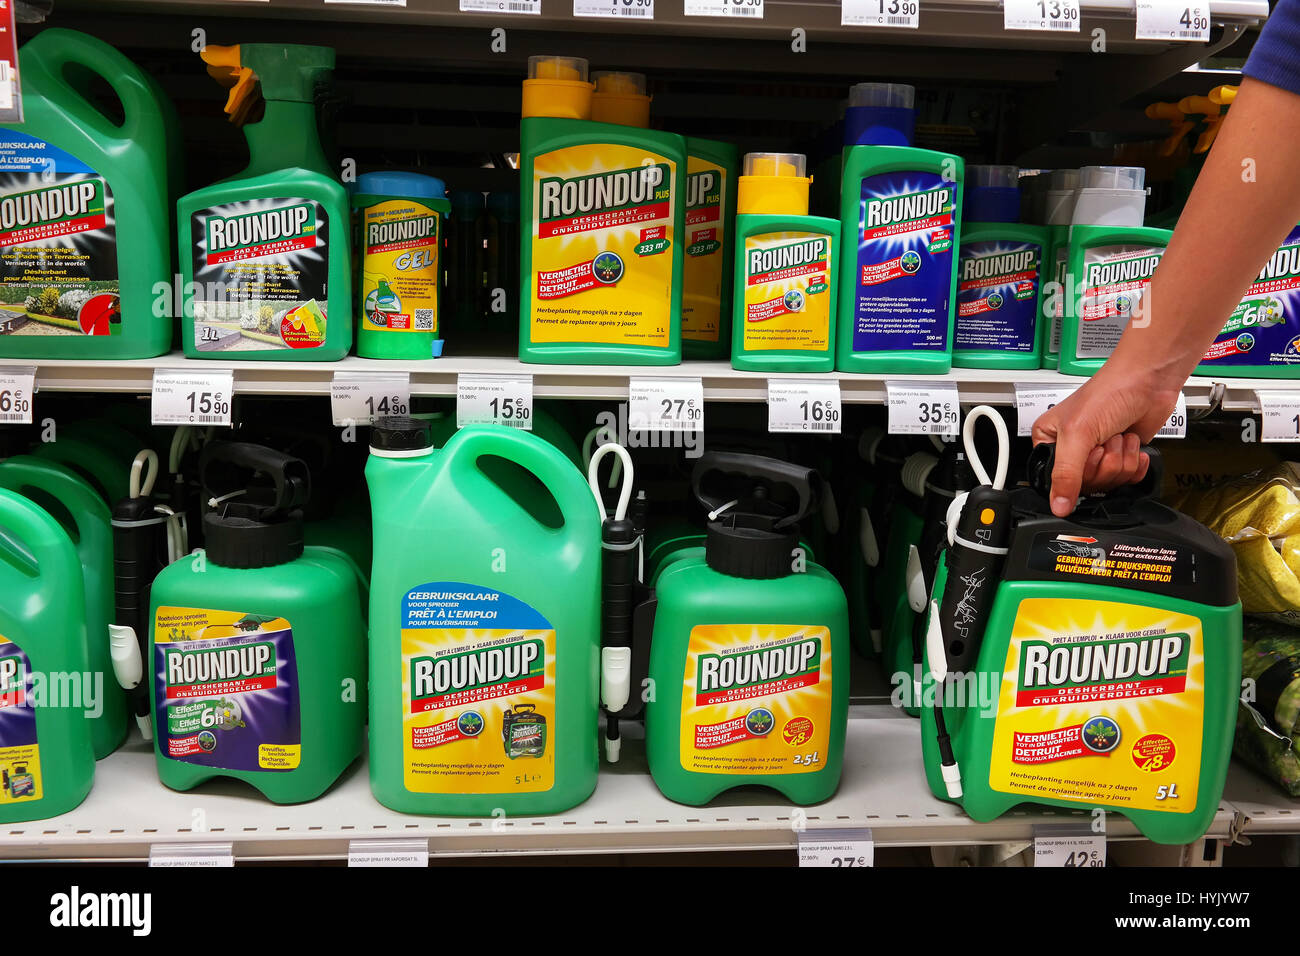 Roundup Weedkillers in Supermarket Stock Photo